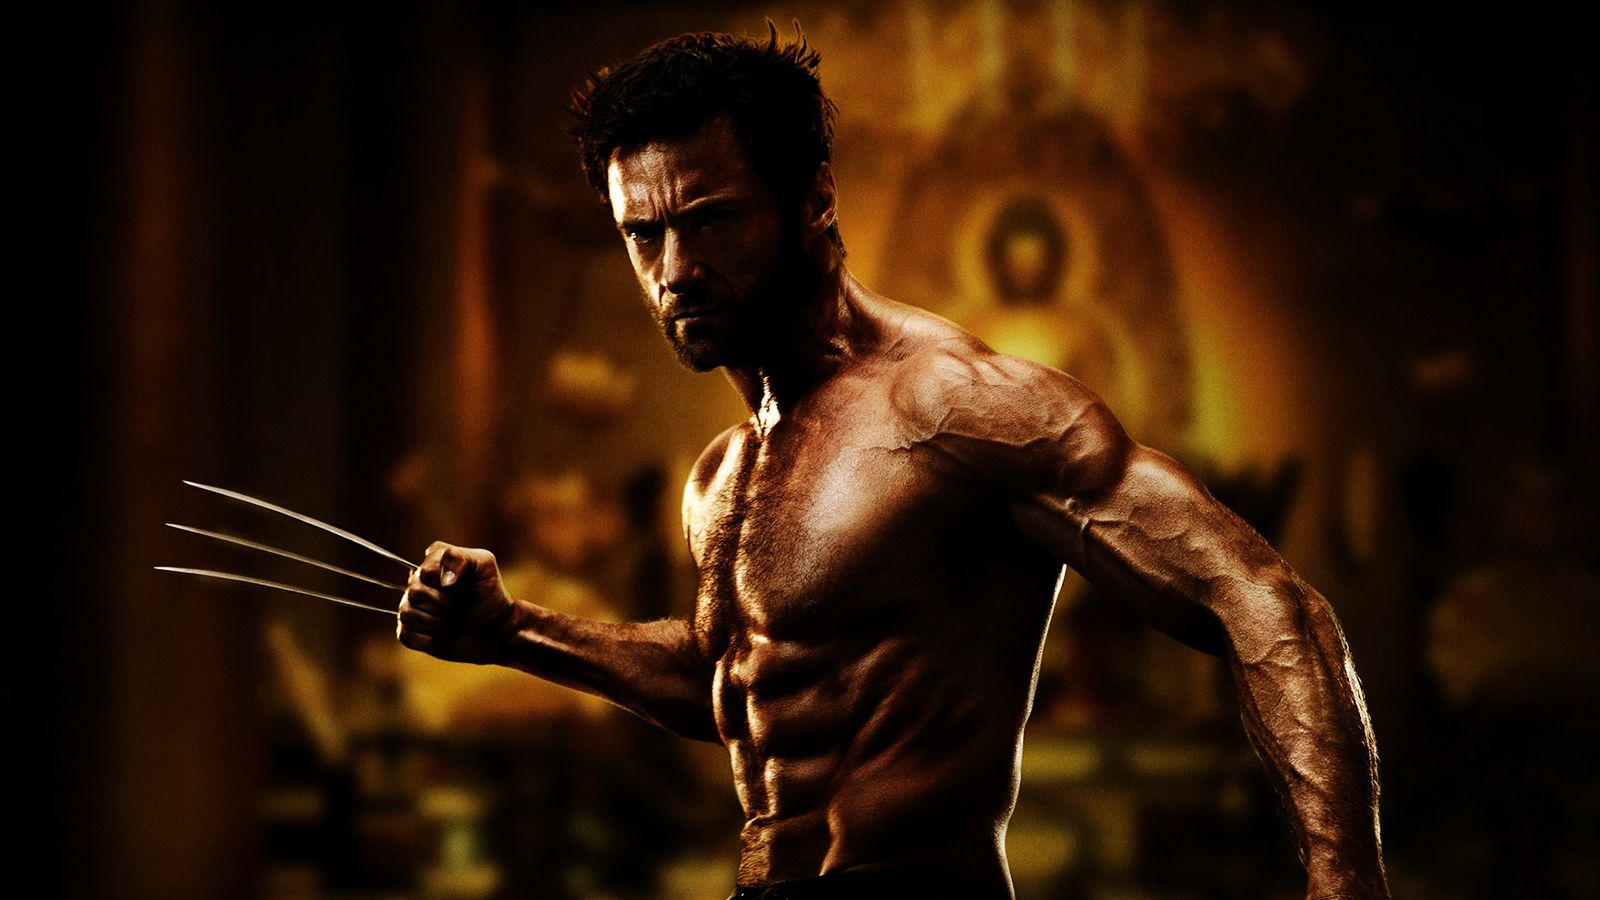 An image from The Wolverine